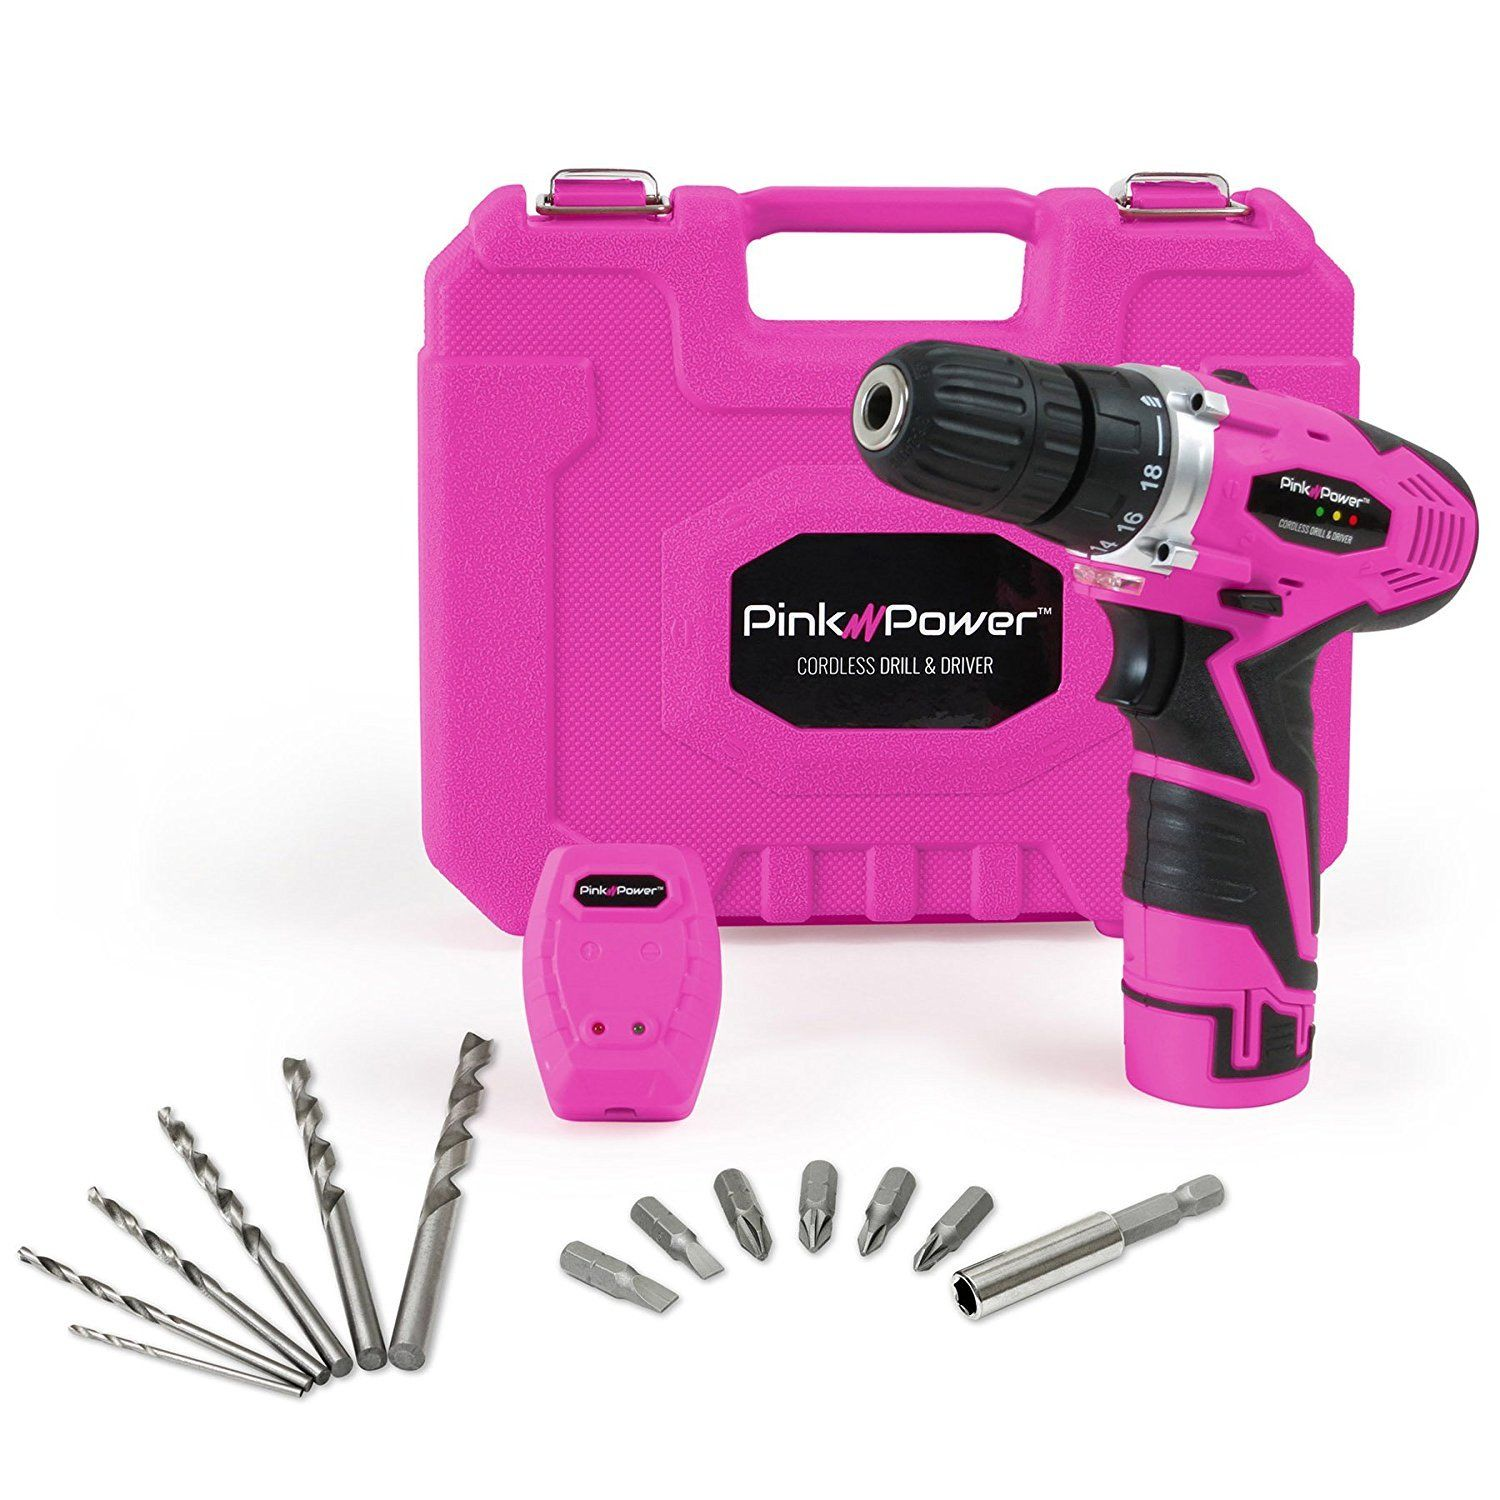 Pink Power 12v Cordless Drill Tool Kit Pink Power Drill Set Cordless Drill